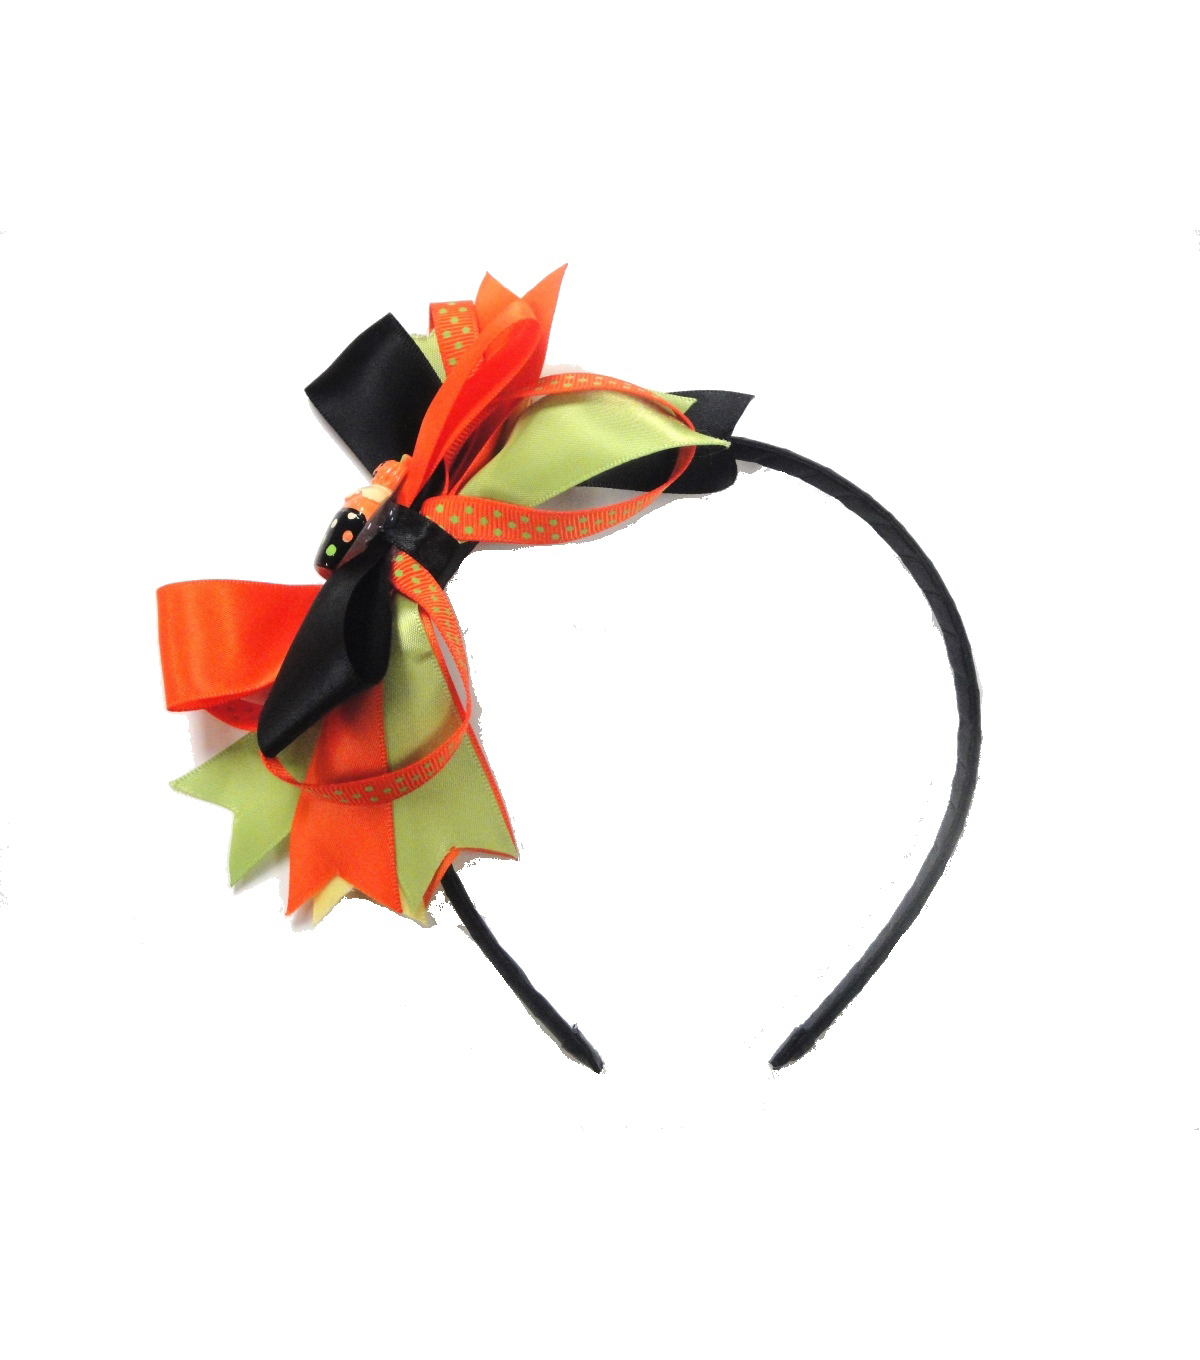 Maker\u0027s Halloween Headband with Pumpkin Cupcake & Ribbons